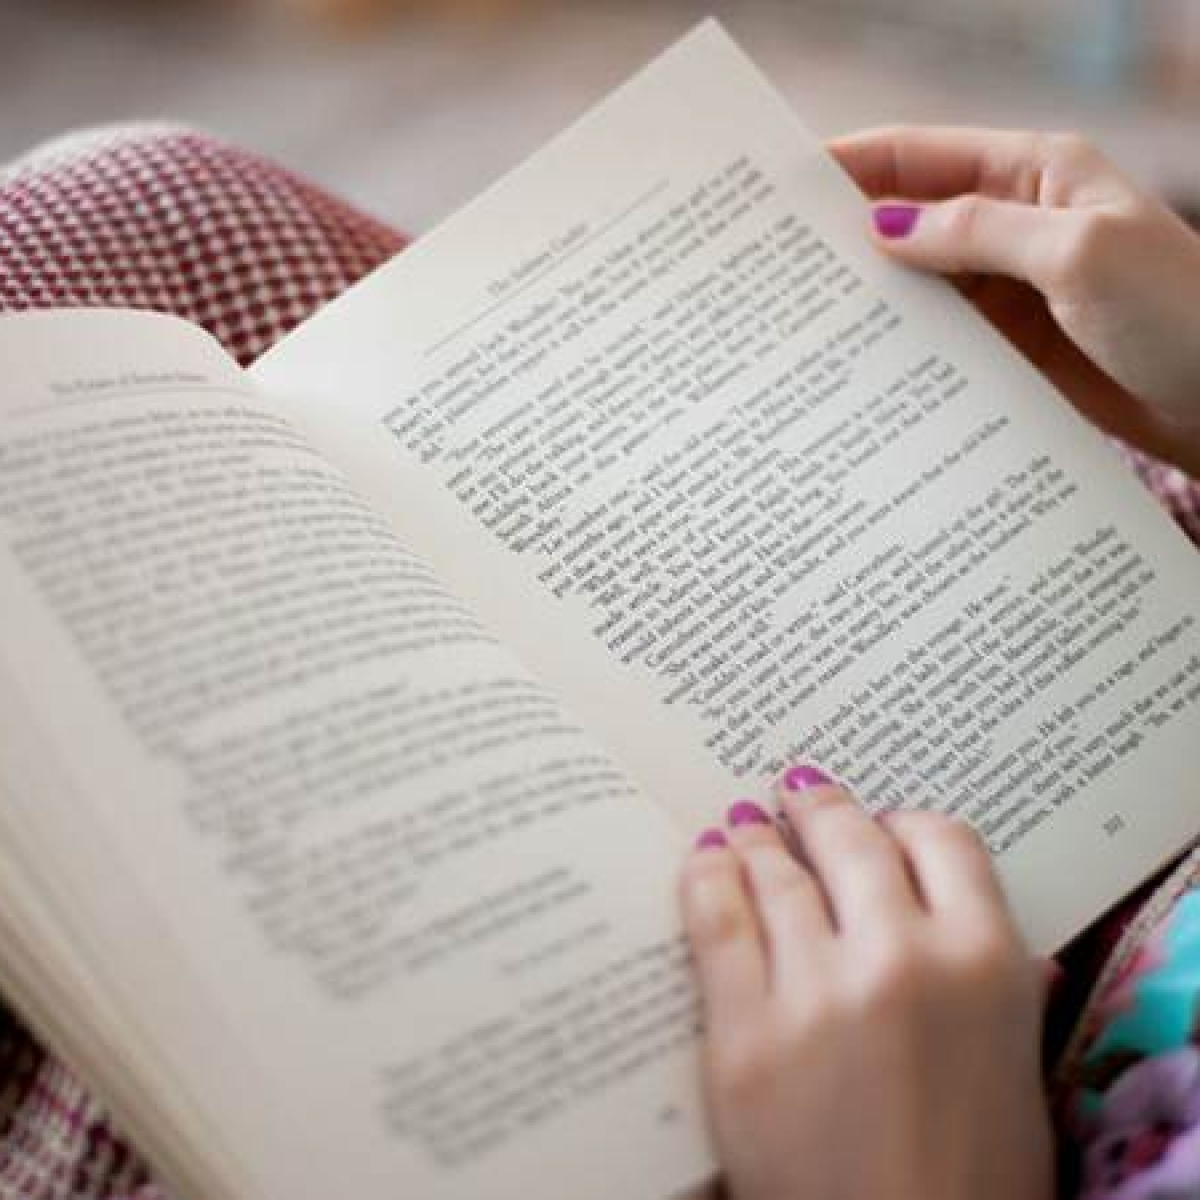 Benefit of reading a challenging book